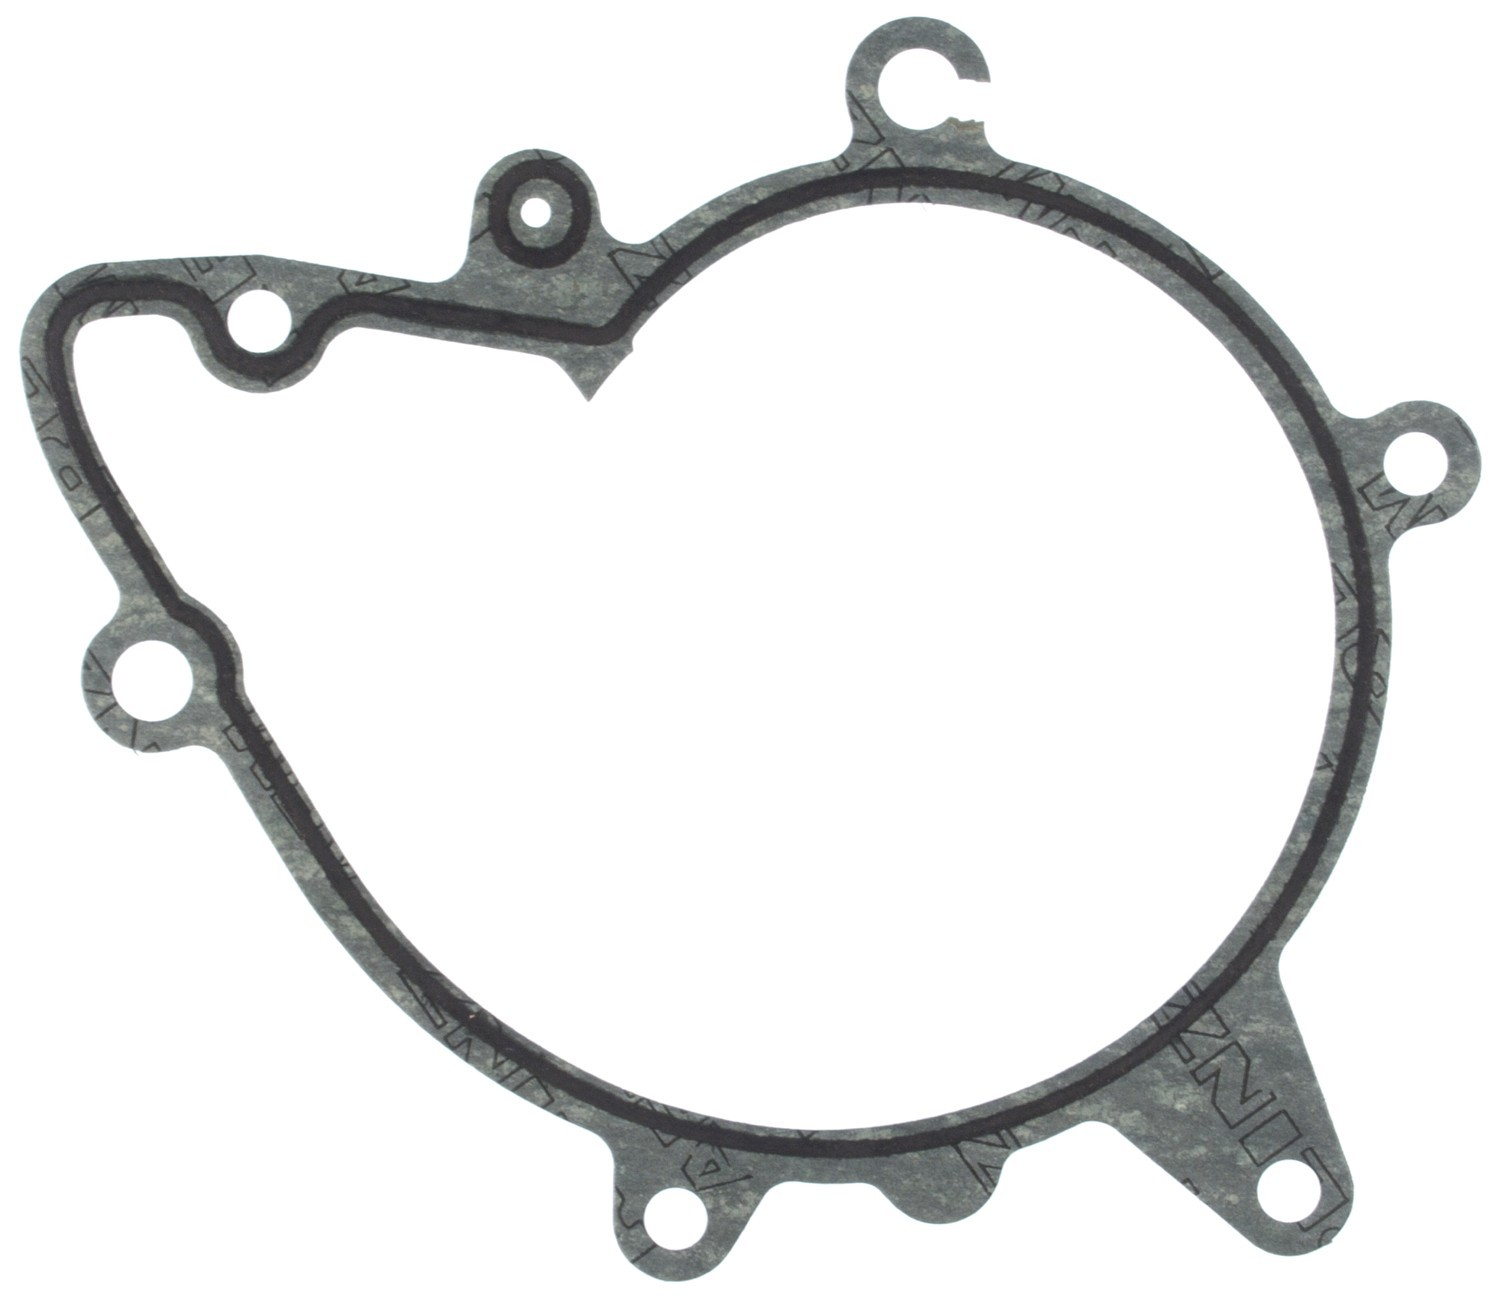 Engine Water Pump Gasket Fits Bmw 540i 740il X5